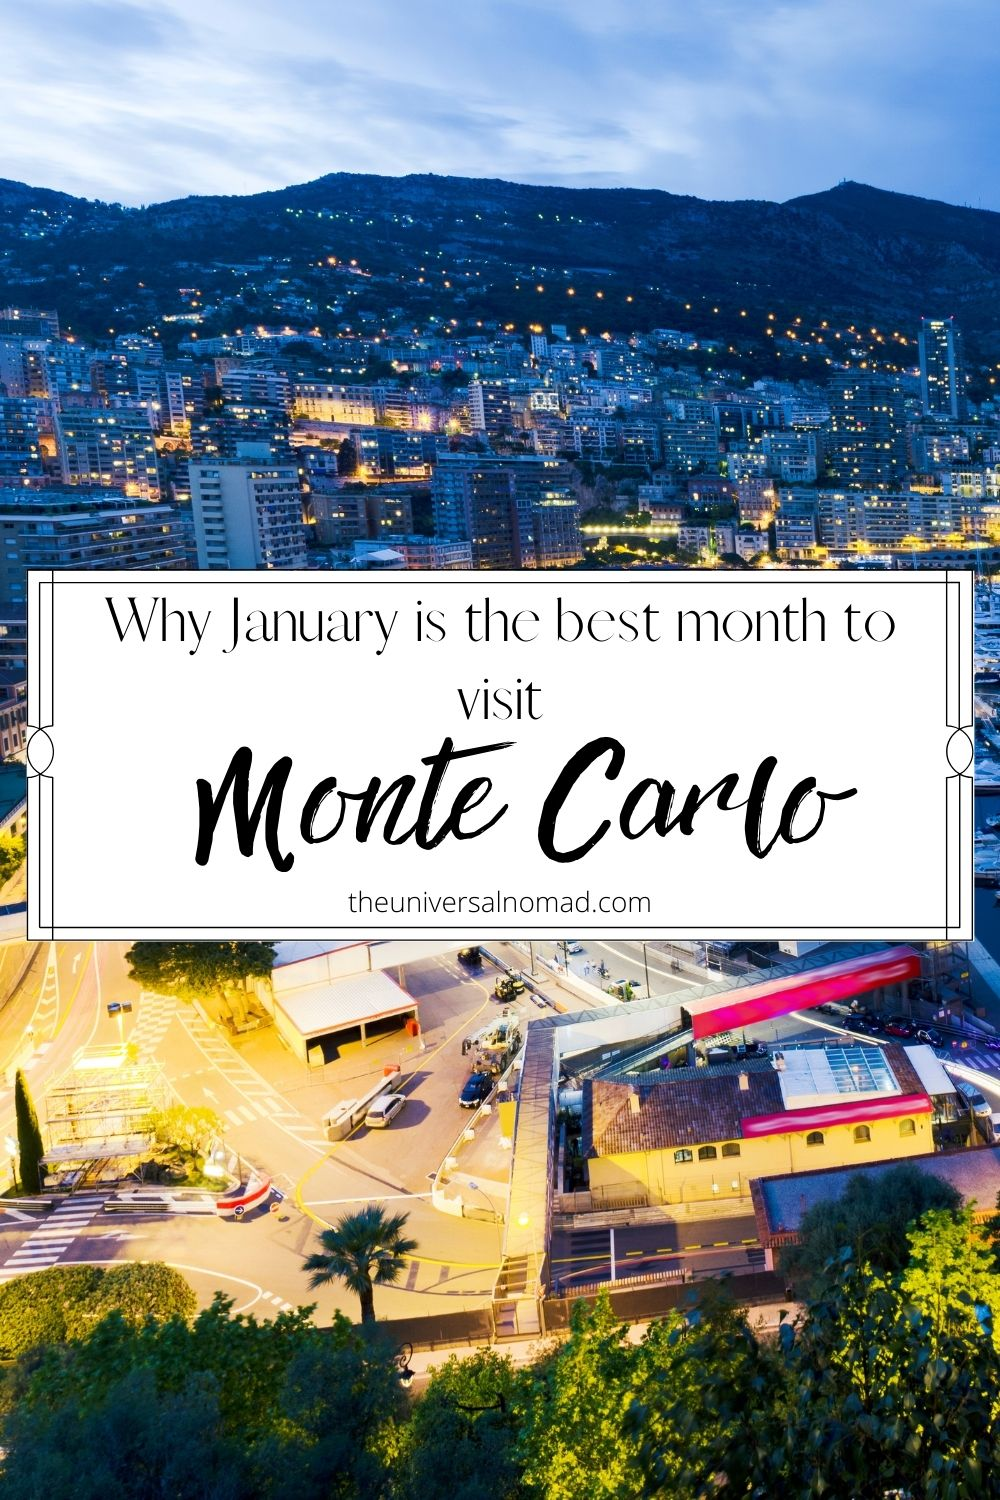 Why January is the best month to visit Monte Carlo